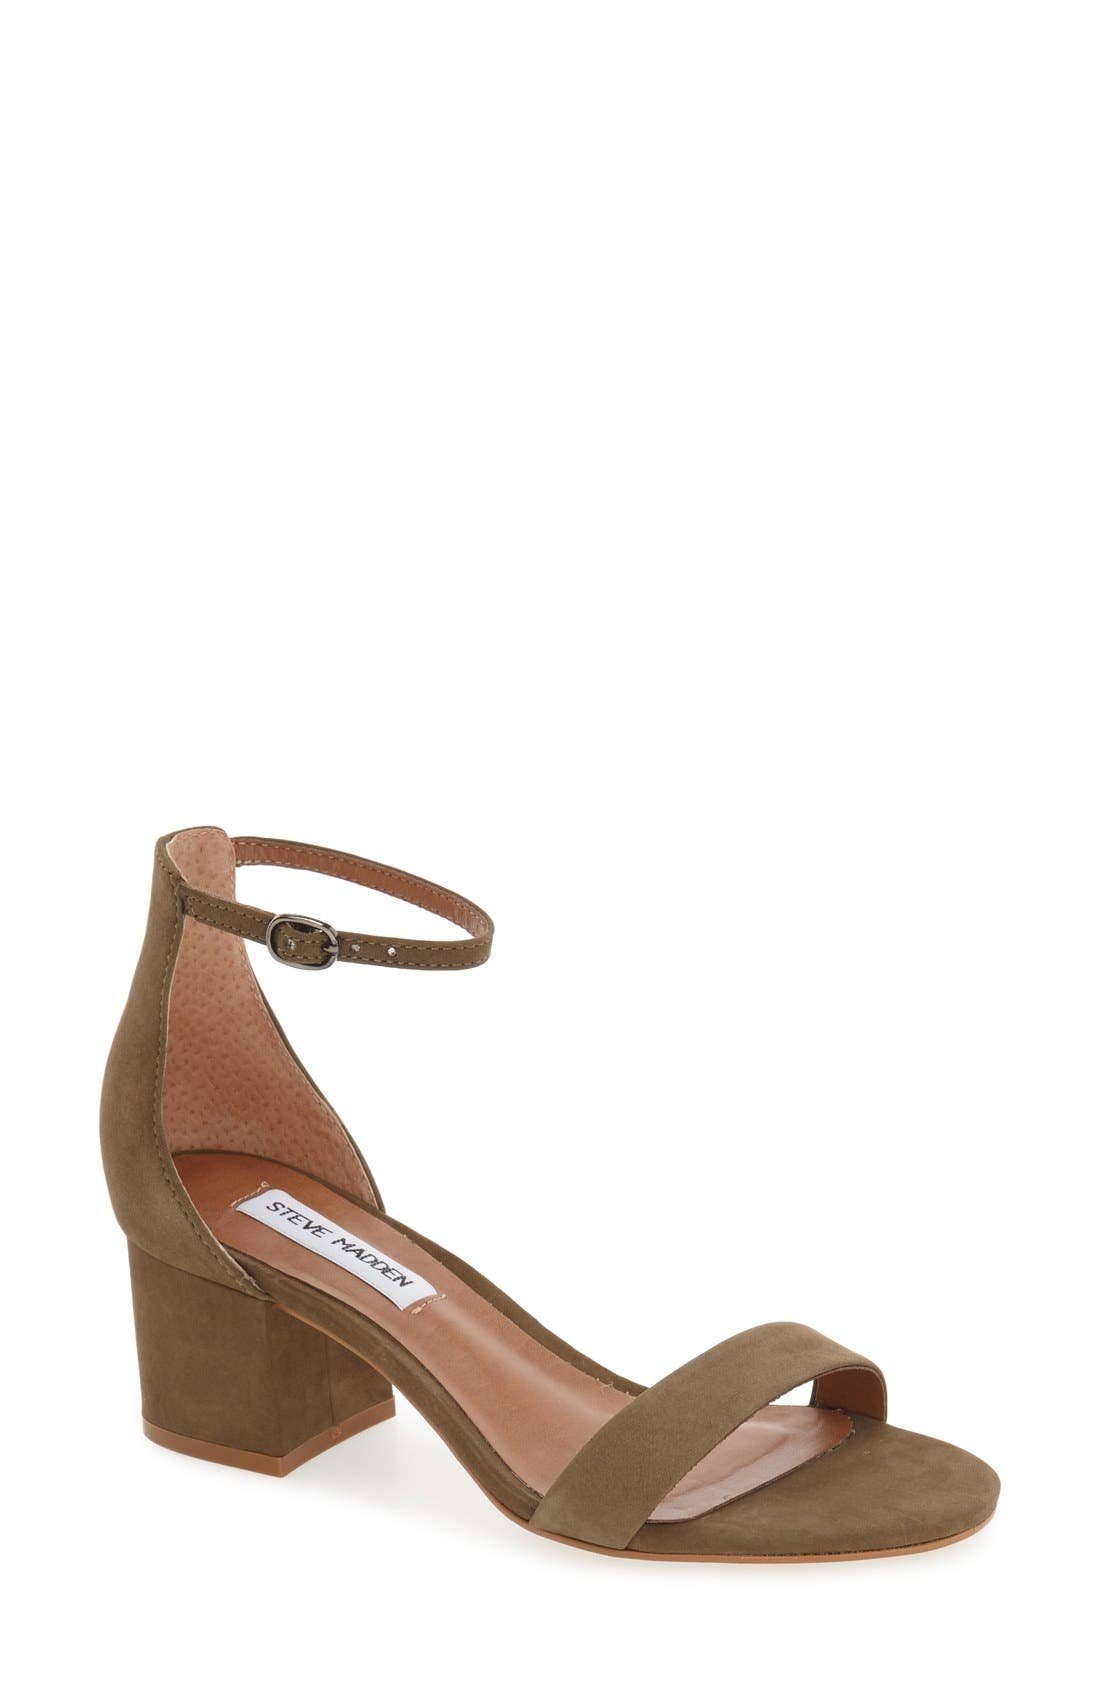 Alternate Image 1 Selected - Steve Madden Irenee Ankle Strap Sandal (Women)